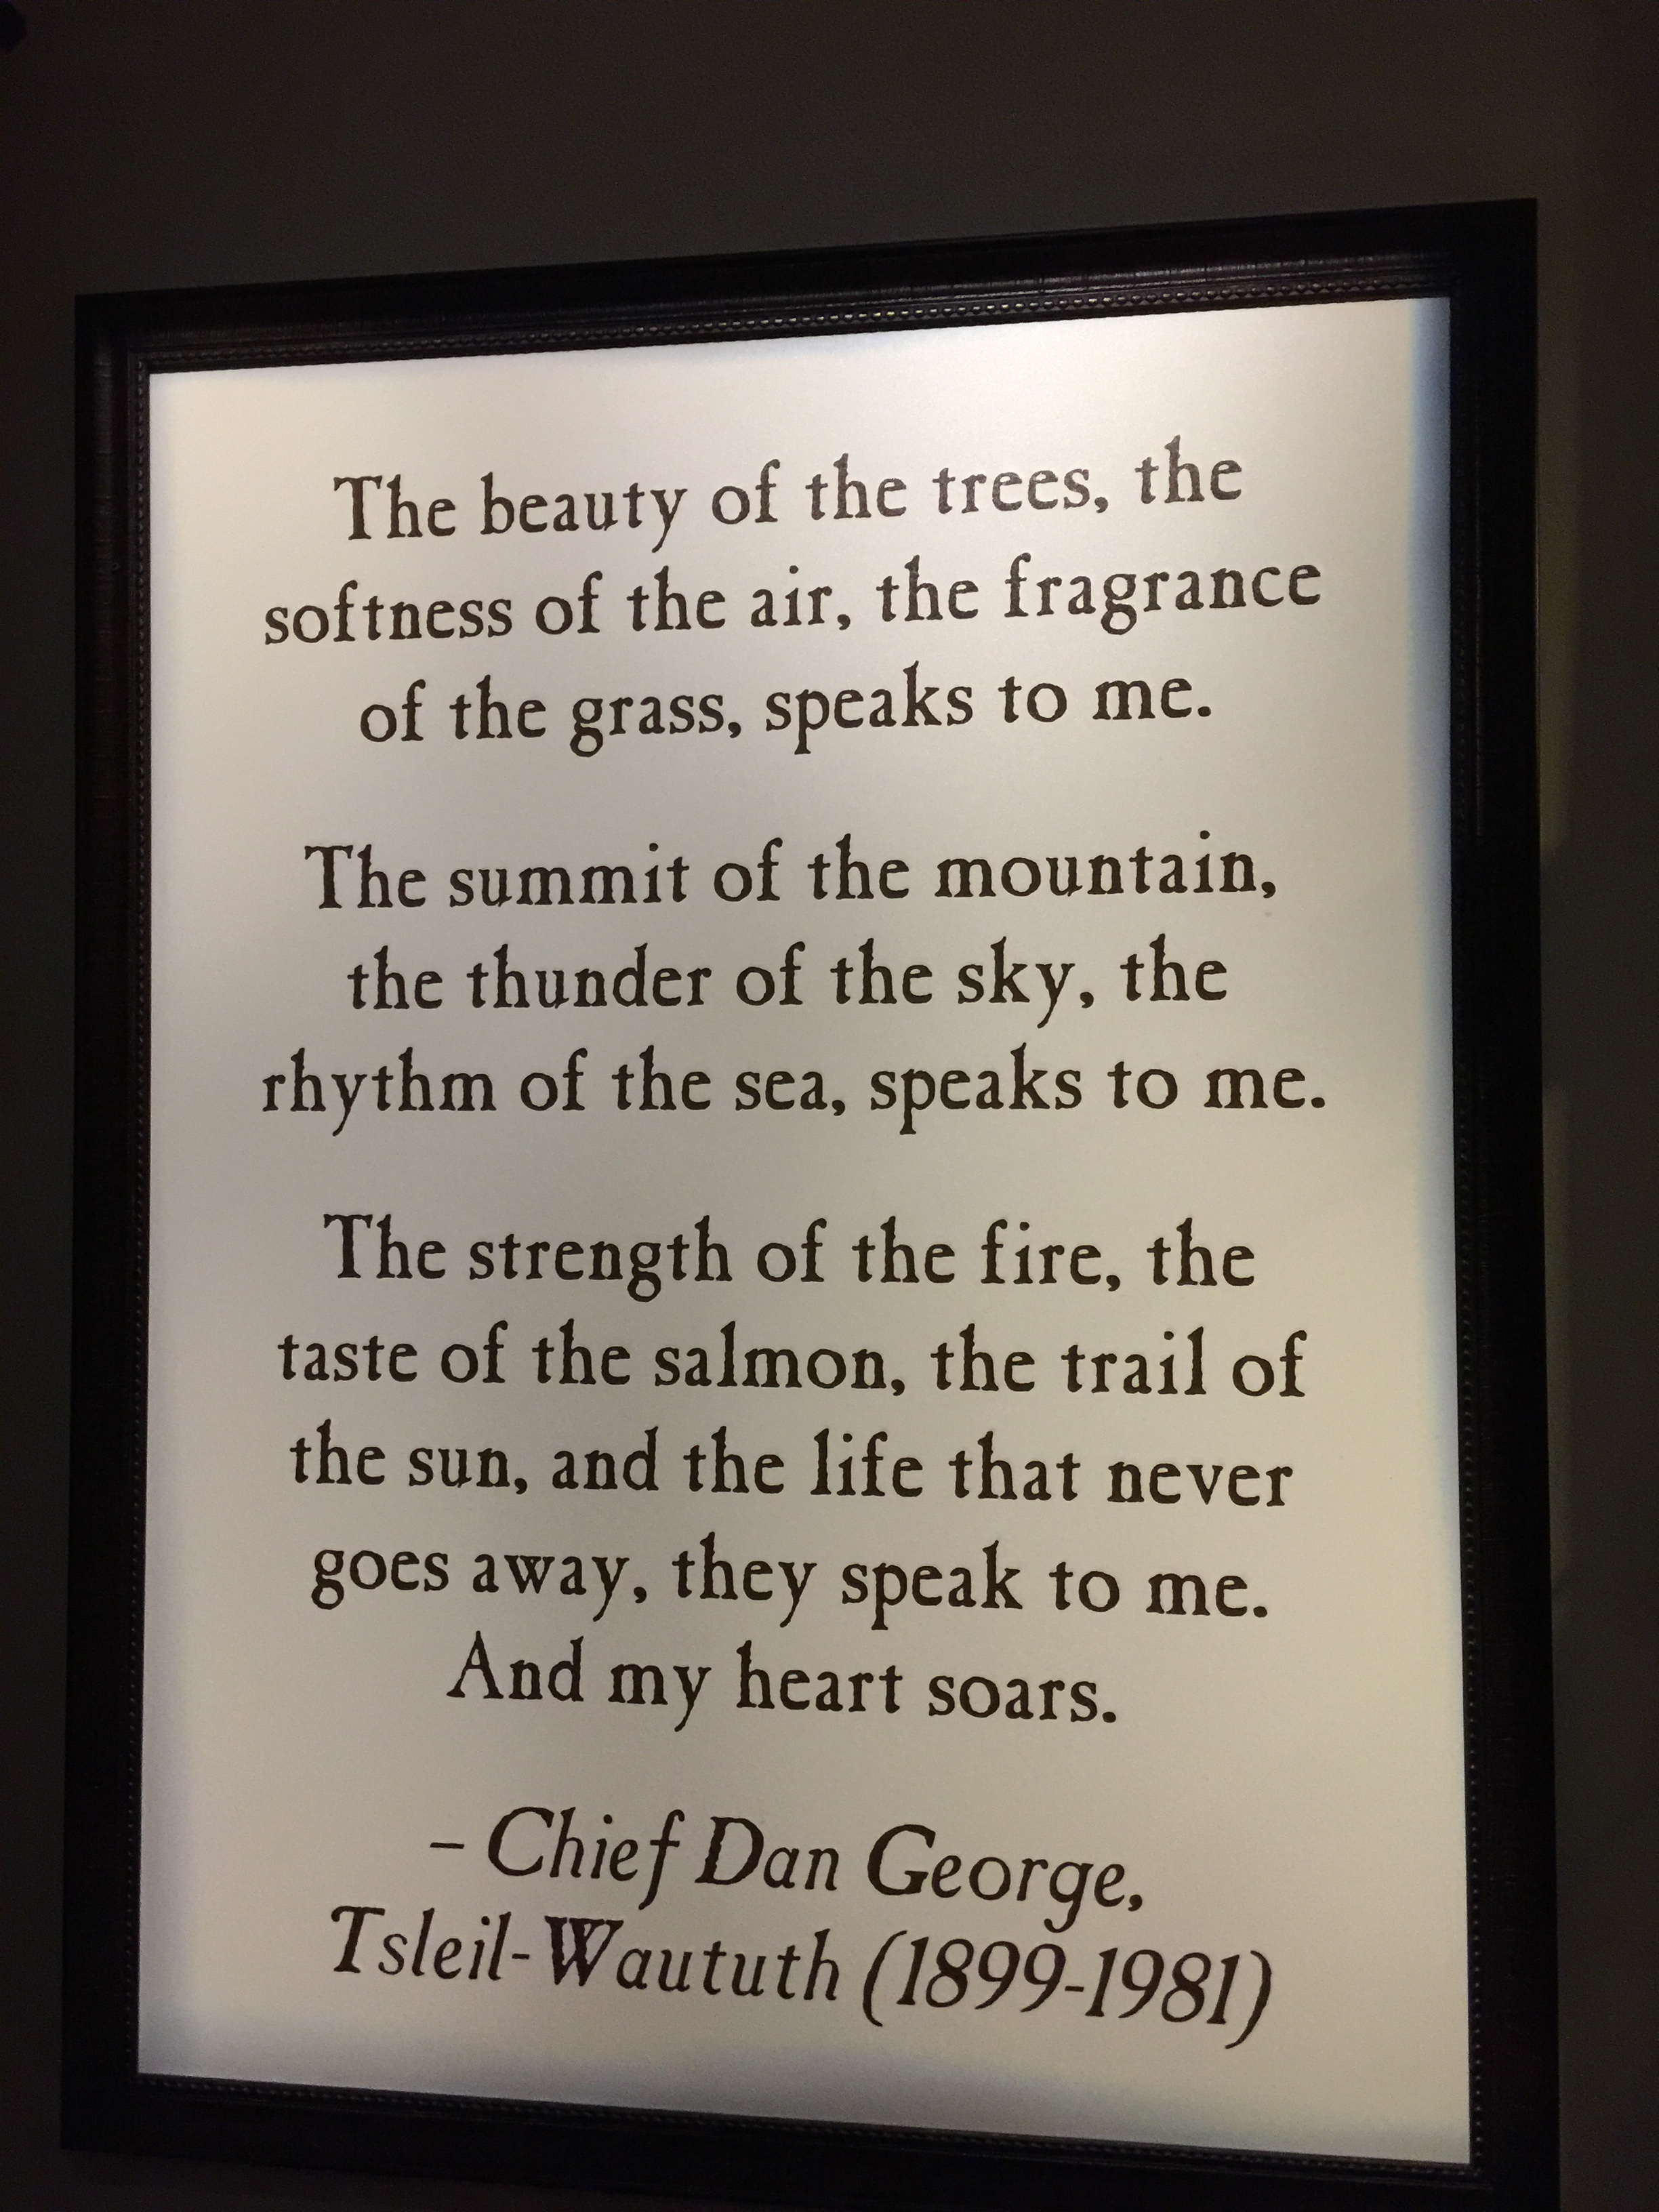 I Love This!!! - I love this! I found it on the wall of Big Cedar Lodge in Missouri last year.